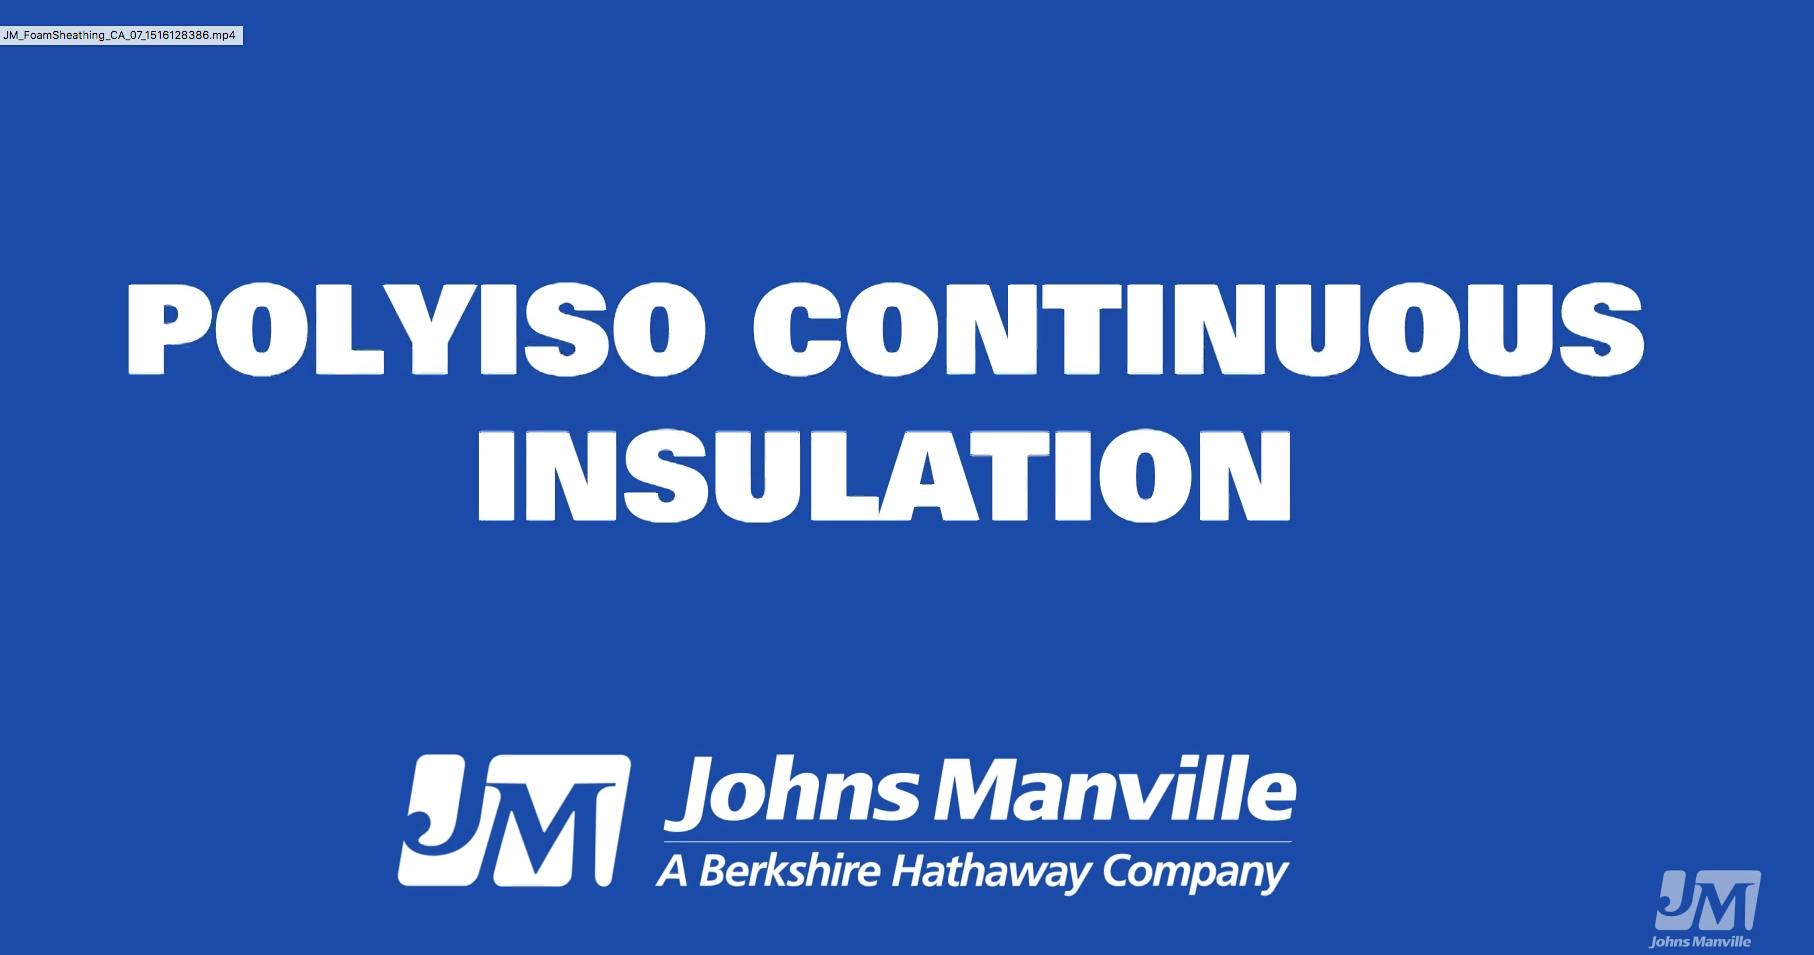 Polyiso Continuous Insulation